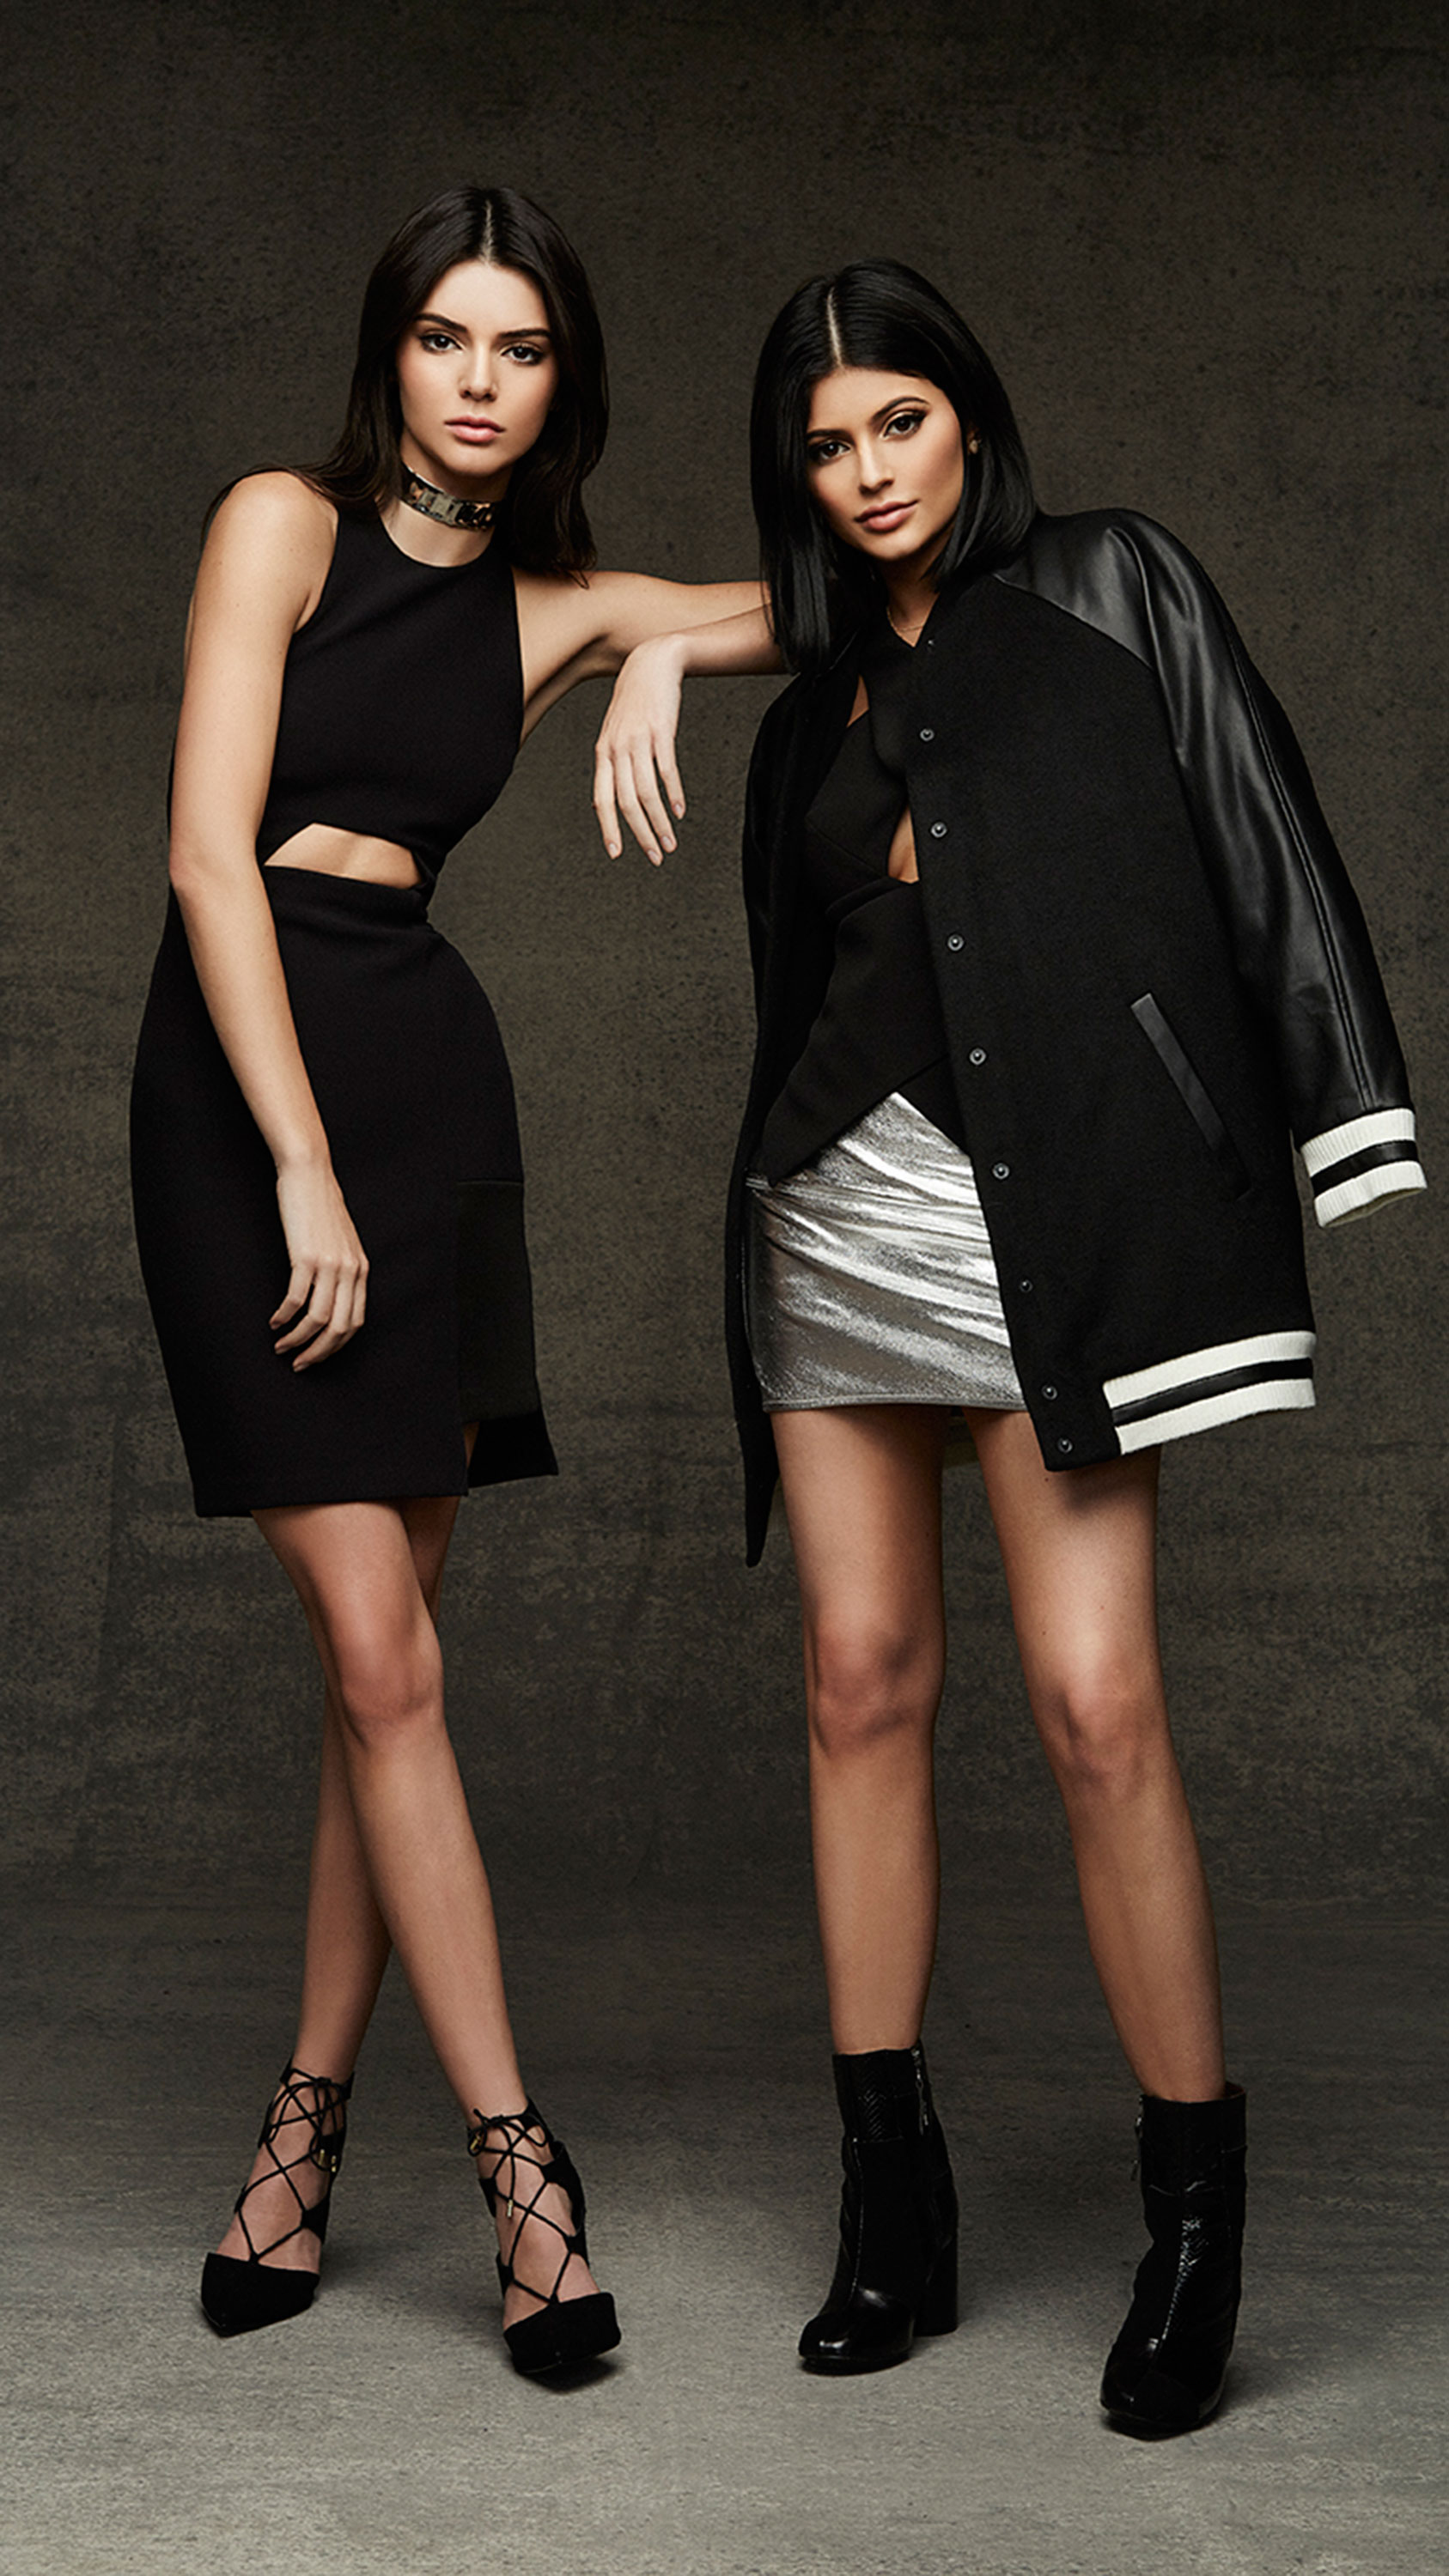 Following the success of Kendall and Kylie Jenner's collection for Topshop in June, the sisters are back for round two. This time they've designed a holiday collection that comes complete with cut-out mini dress, cropped tops and pretty prints you can bet you'll see on the party circuit this season. The collection goes on sale globally on 20 November, with prices ranging from $70 to $310. Click through to see the entire range.